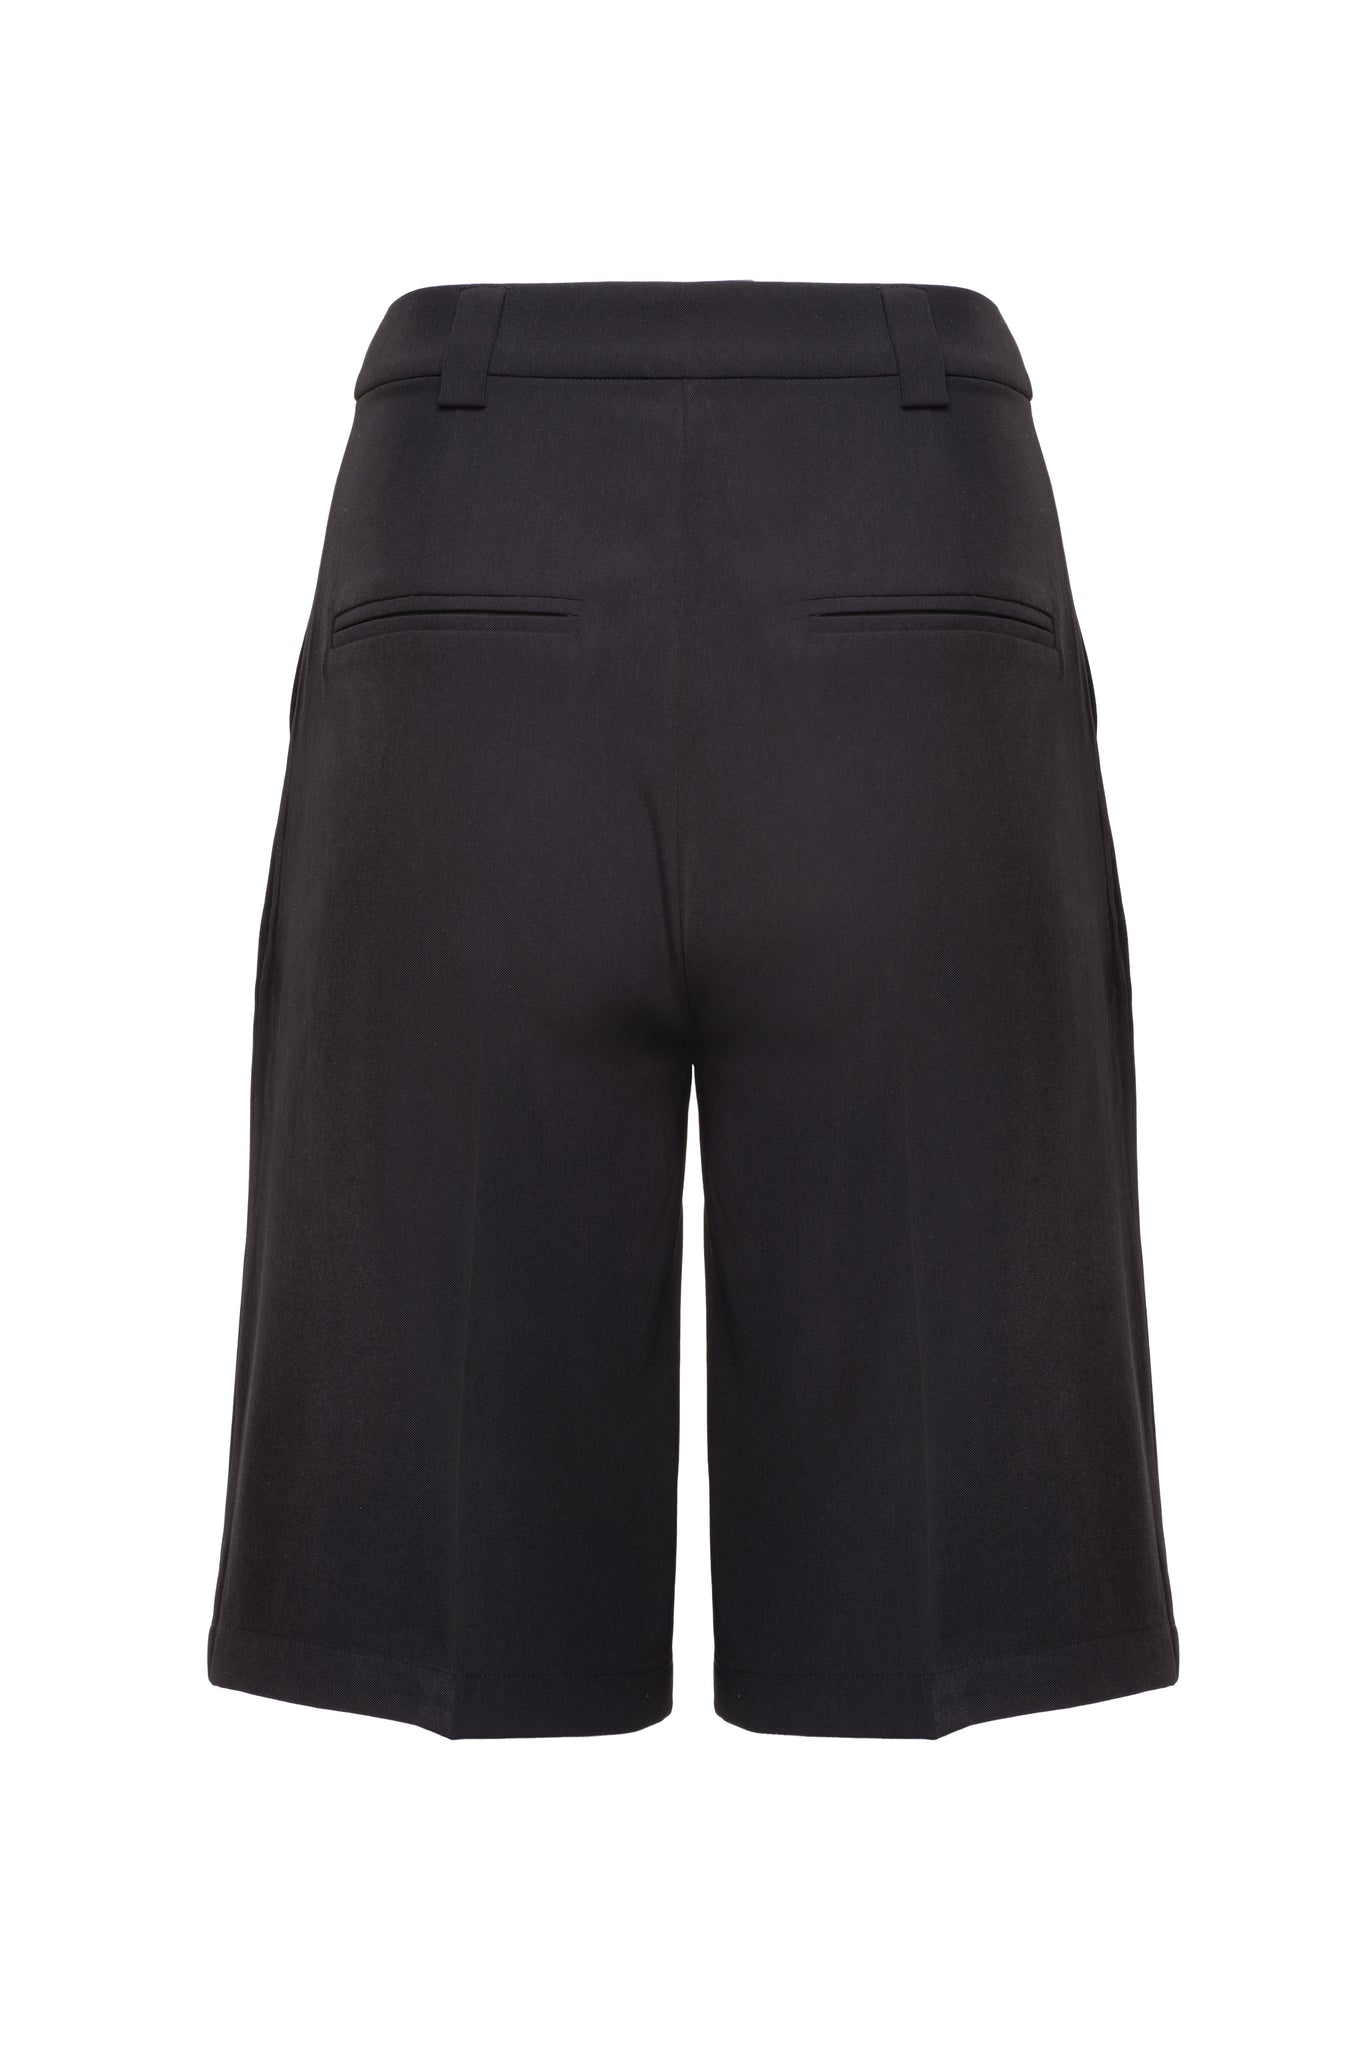 Load image into Gallery viewer, Charcoal Black Tailored Bermuda Shorts